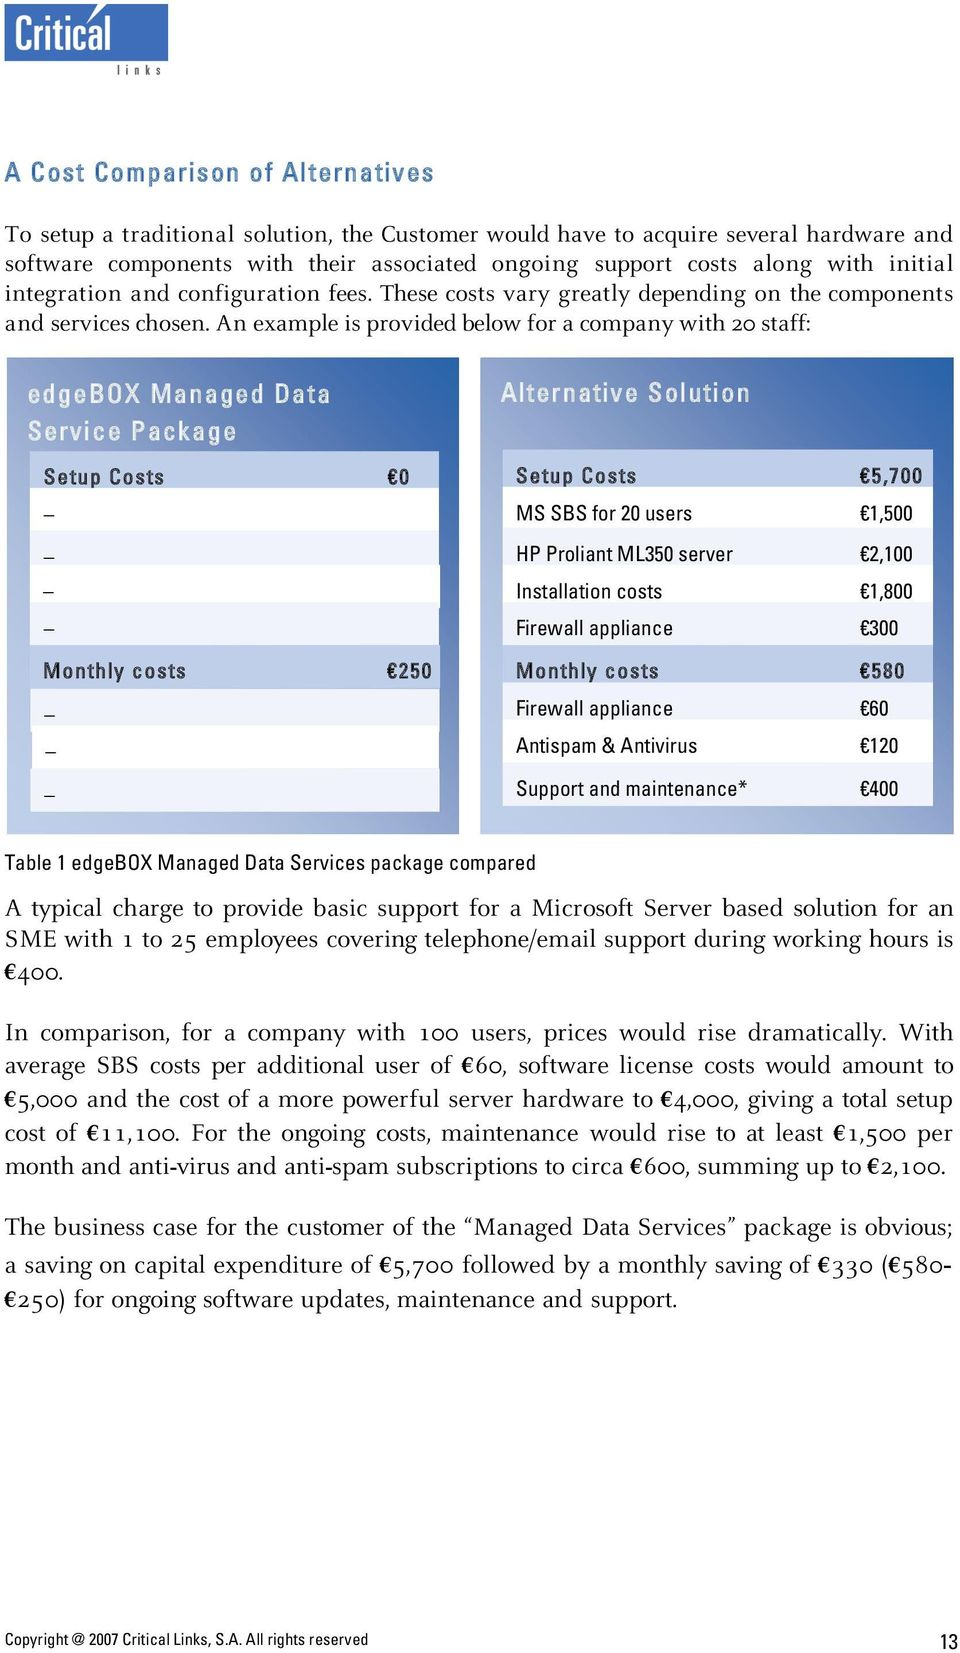 An example is provided below for a company with 20 staff: edgebox Managed Data Servi ce Pack age Setup Costs 0 Monthly costs 250 Alter nativ e Sol uti on Setup Costs 5,700 MS SBS for 20 users 1,500